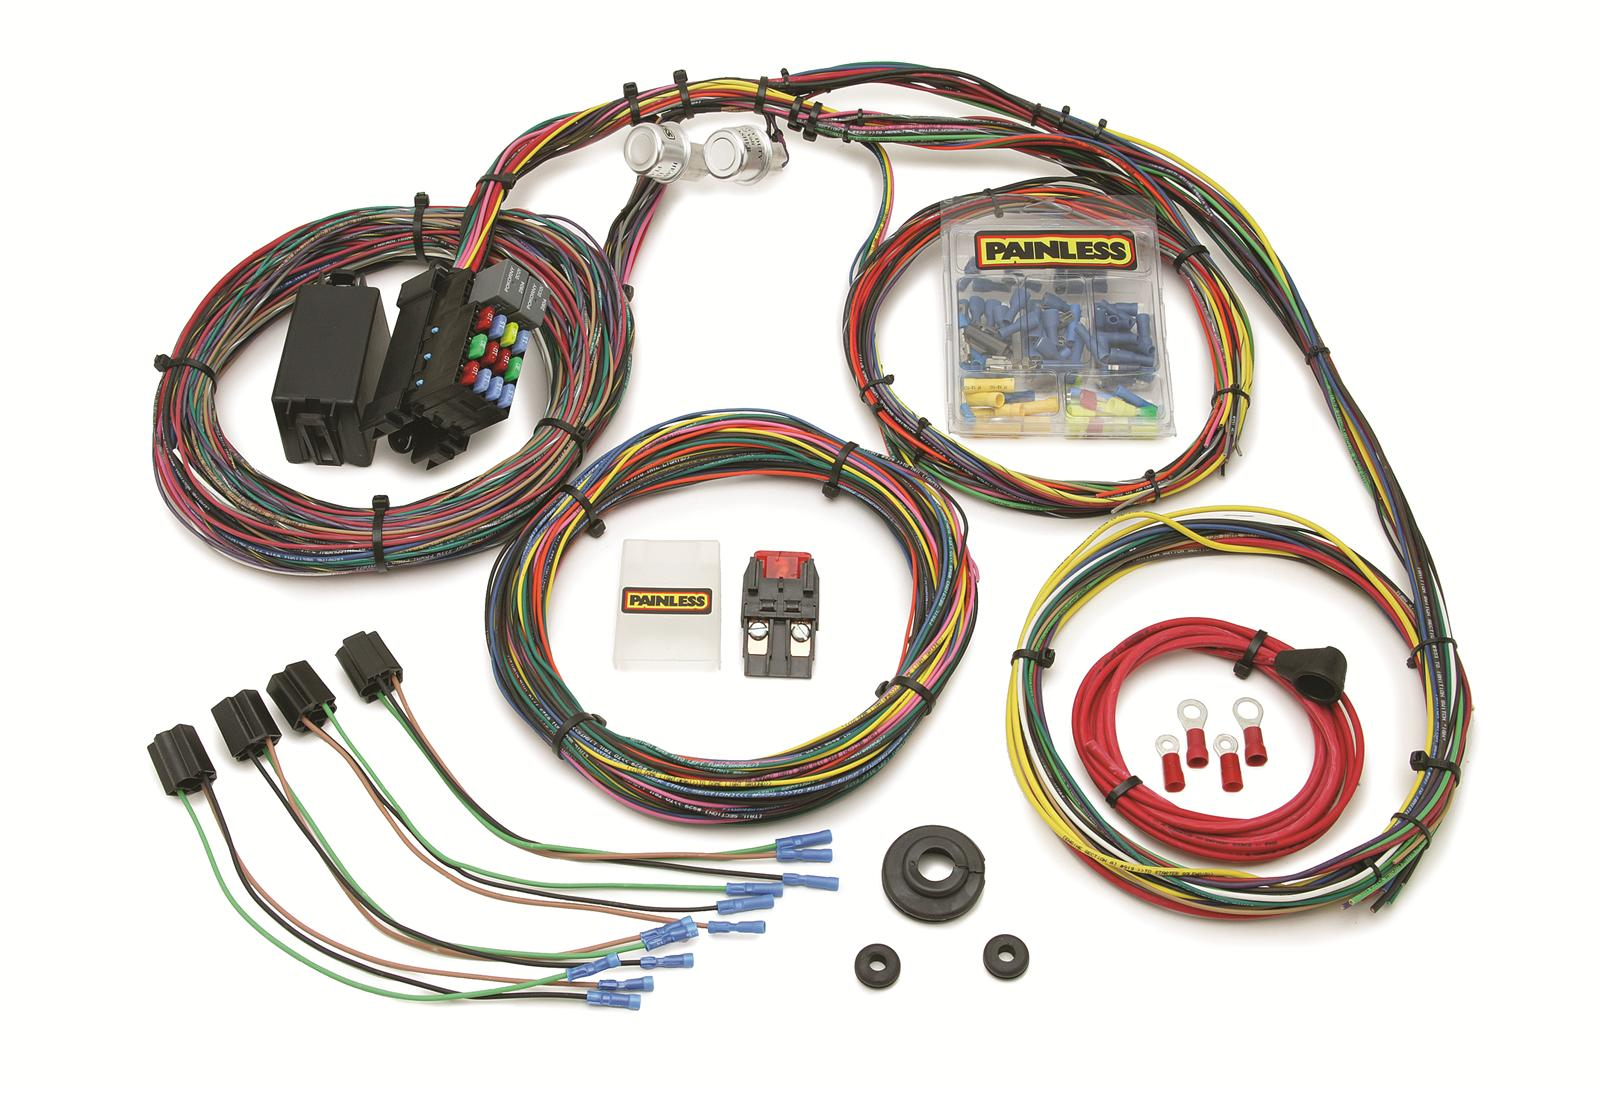 Painless Universal Wiring Harness Diagram Diagrams Street Rod Performance 21 Circuit Mopar Color Coded Key Switch 73 Gm Column